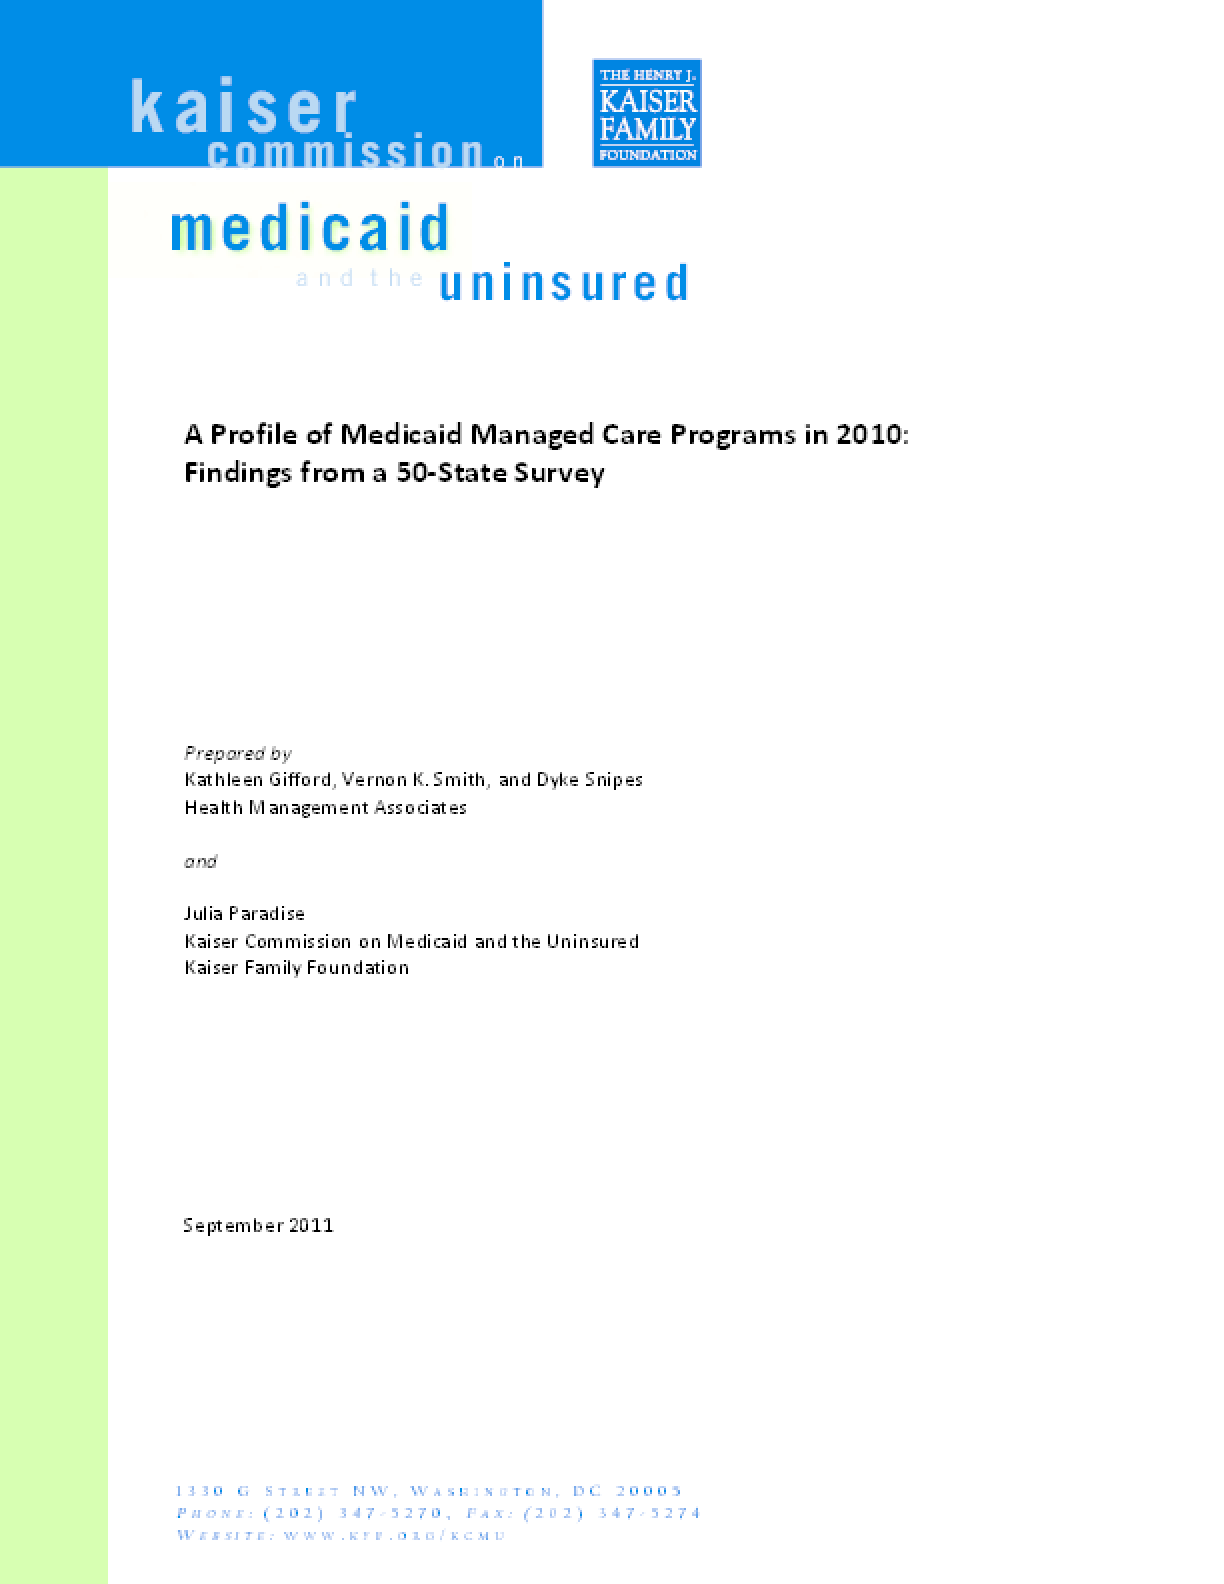 A Profile of Medicaid Managed Care Programs in 2010: Findings From a 50-State Survey